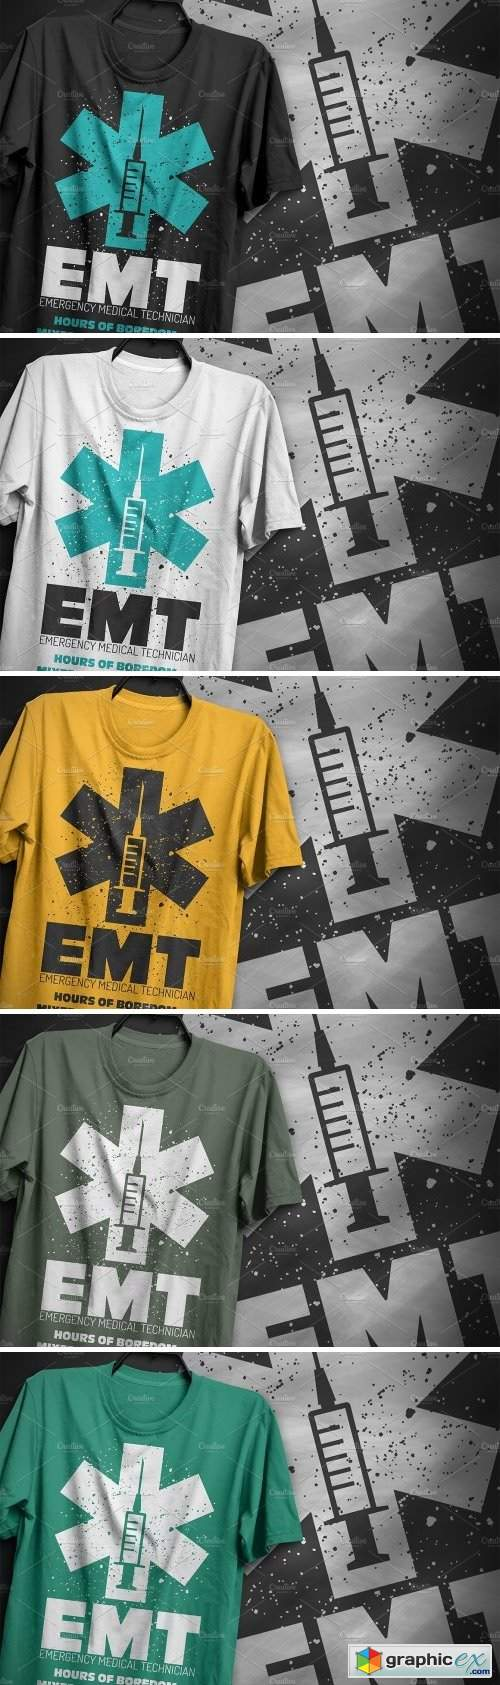 EMT - T-Shirt Design